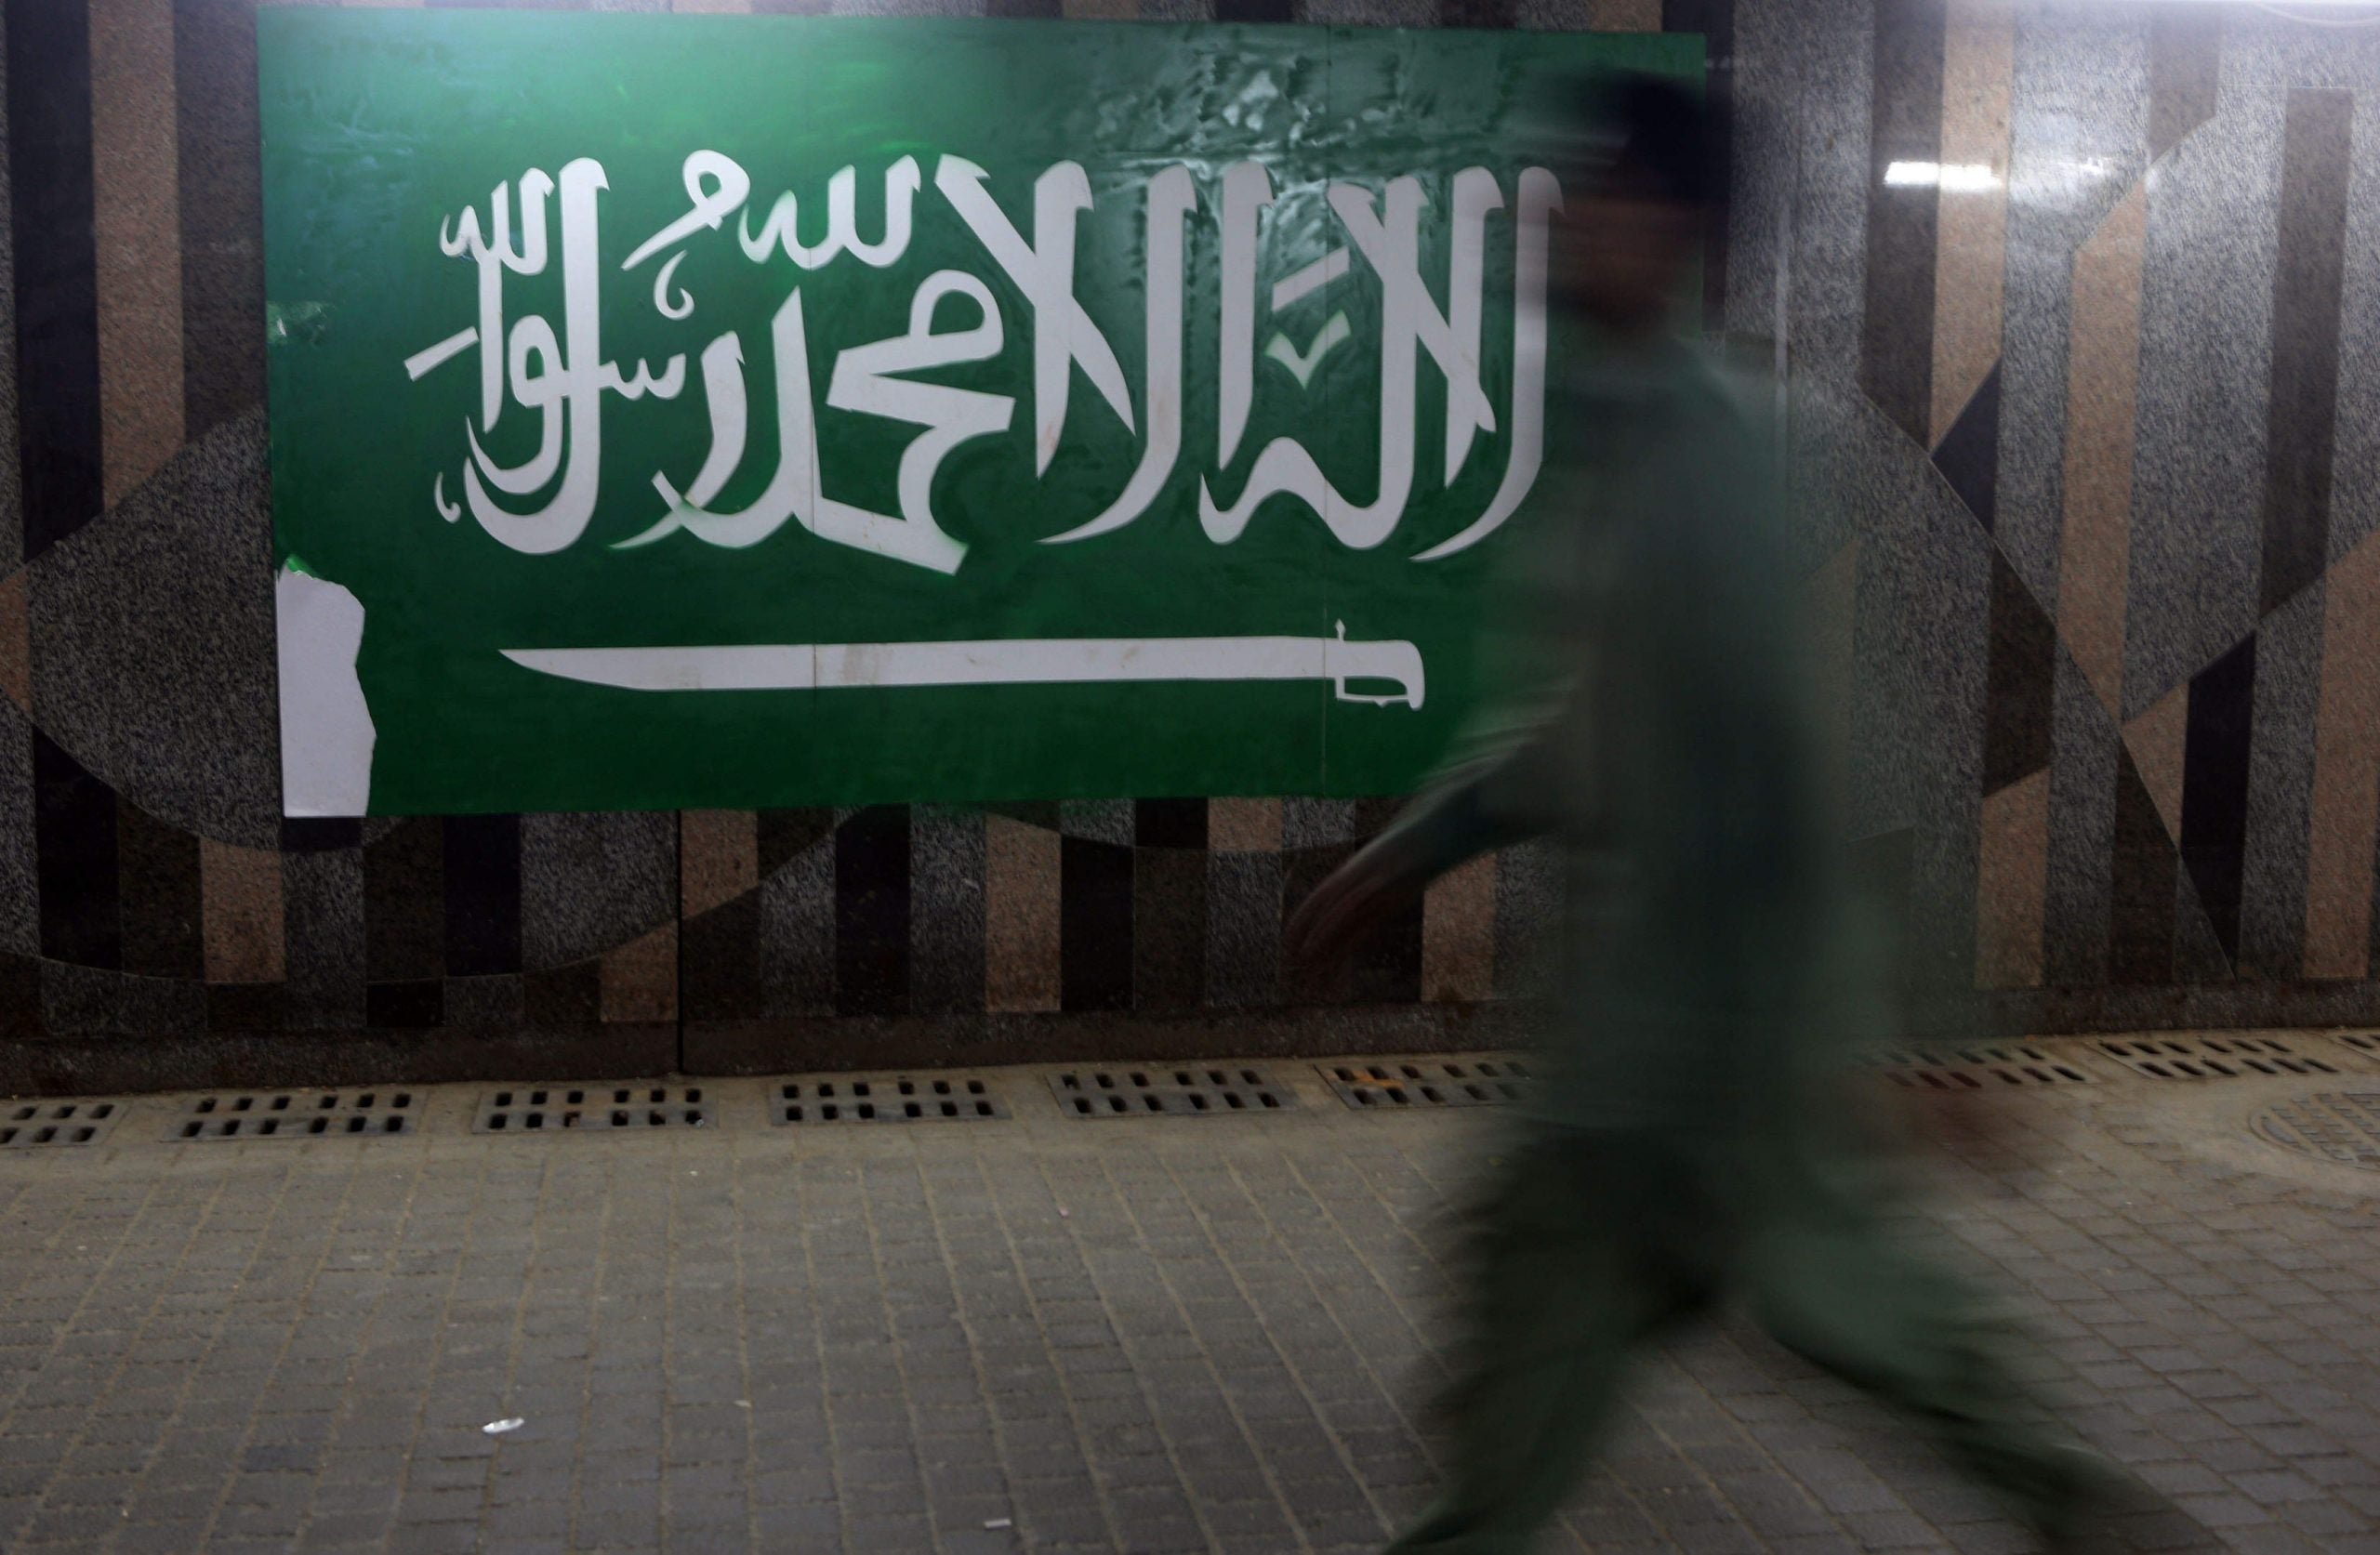 Behind Saudi Arabia's bluster is a country that feels under grave threat